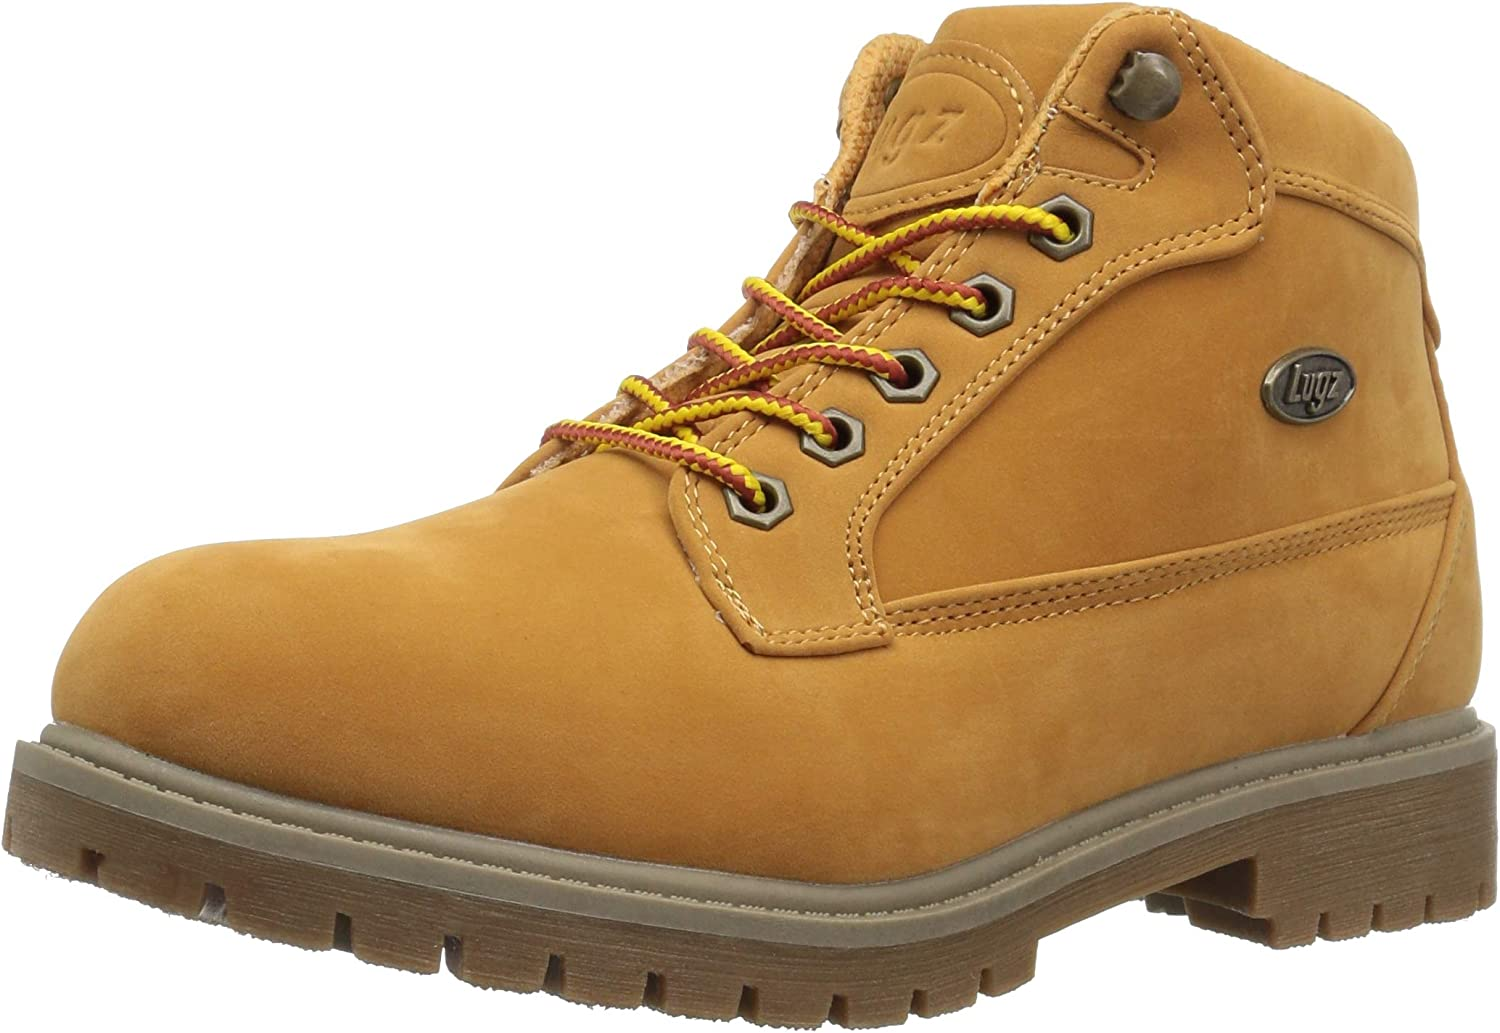 Lugz trust Women's Mantle Boot Gifts Fashion Mid